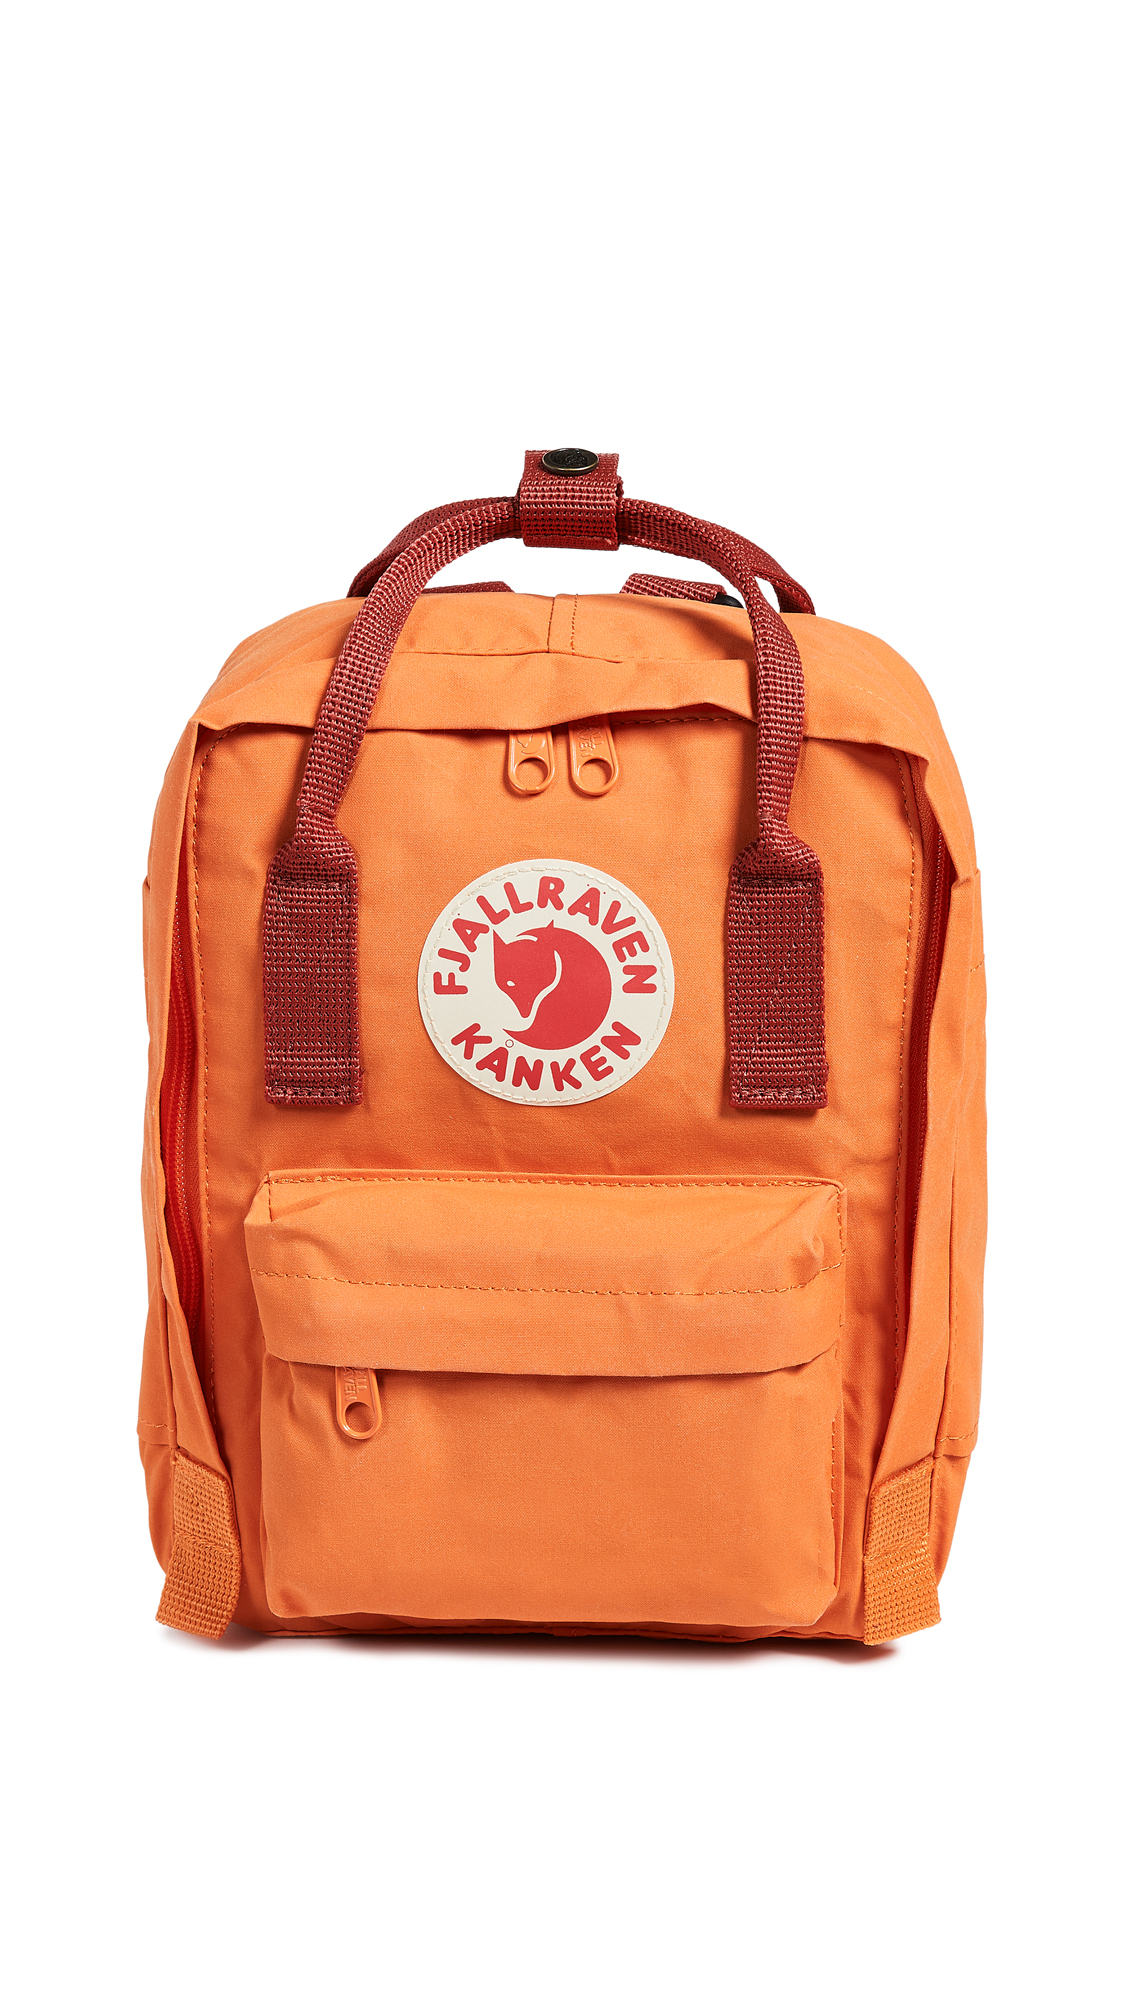 FJALL RAVEN Kanken Mini Backpack in Burnt Orange/Deep Red